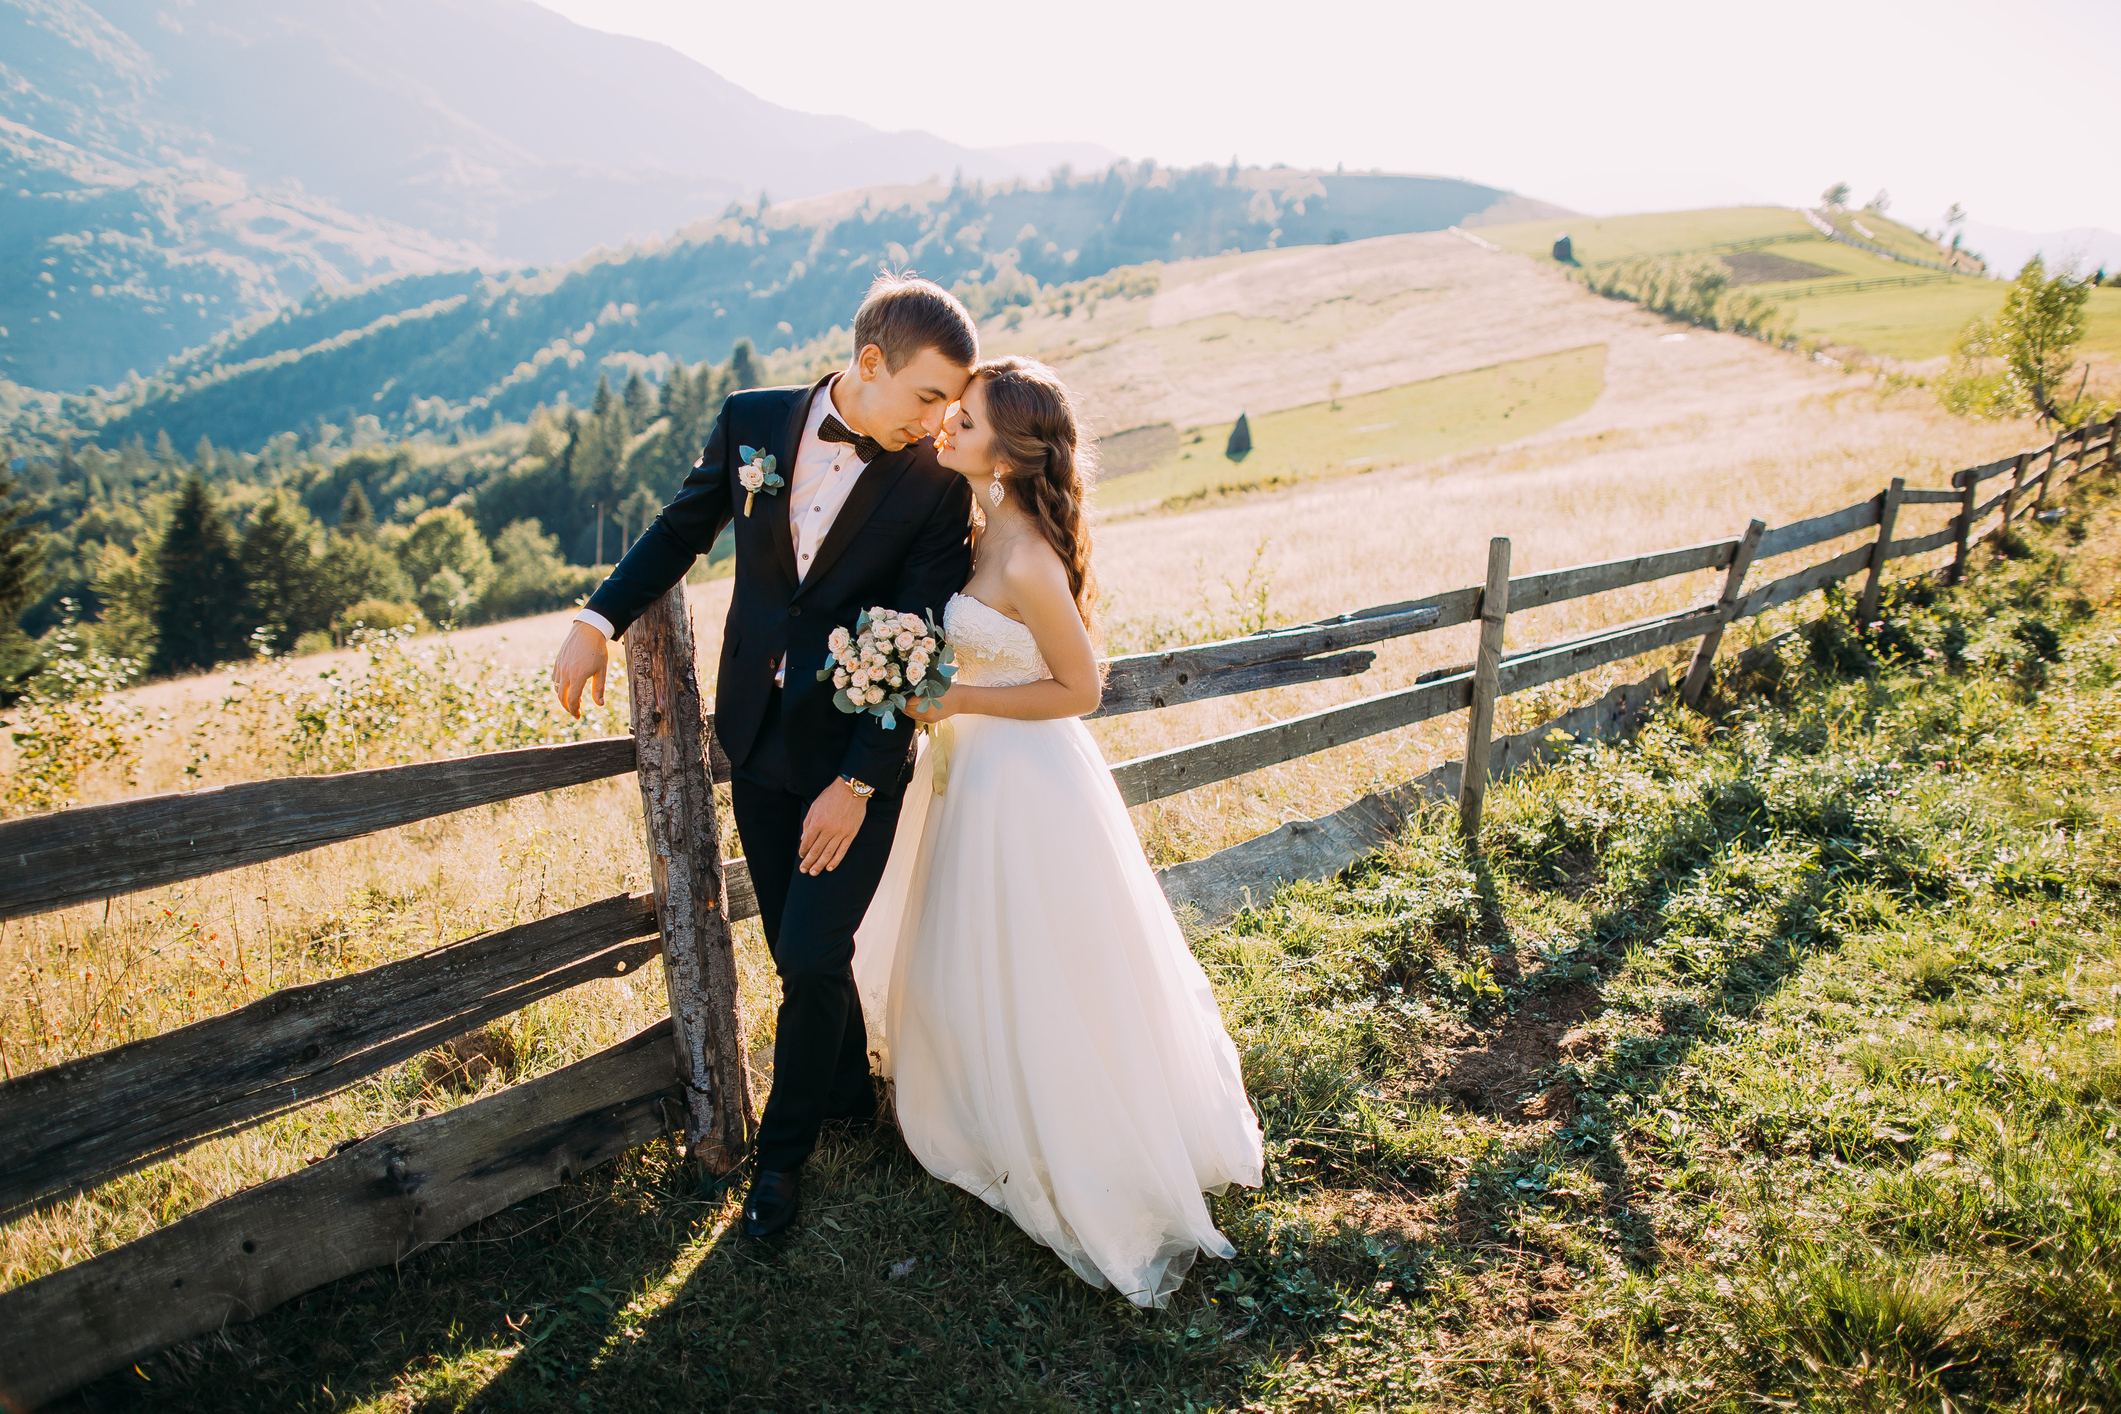 Bride-and-groom-standing-embracing-near-wooden-fence-on-the-526717136_2125x1417.jpeg